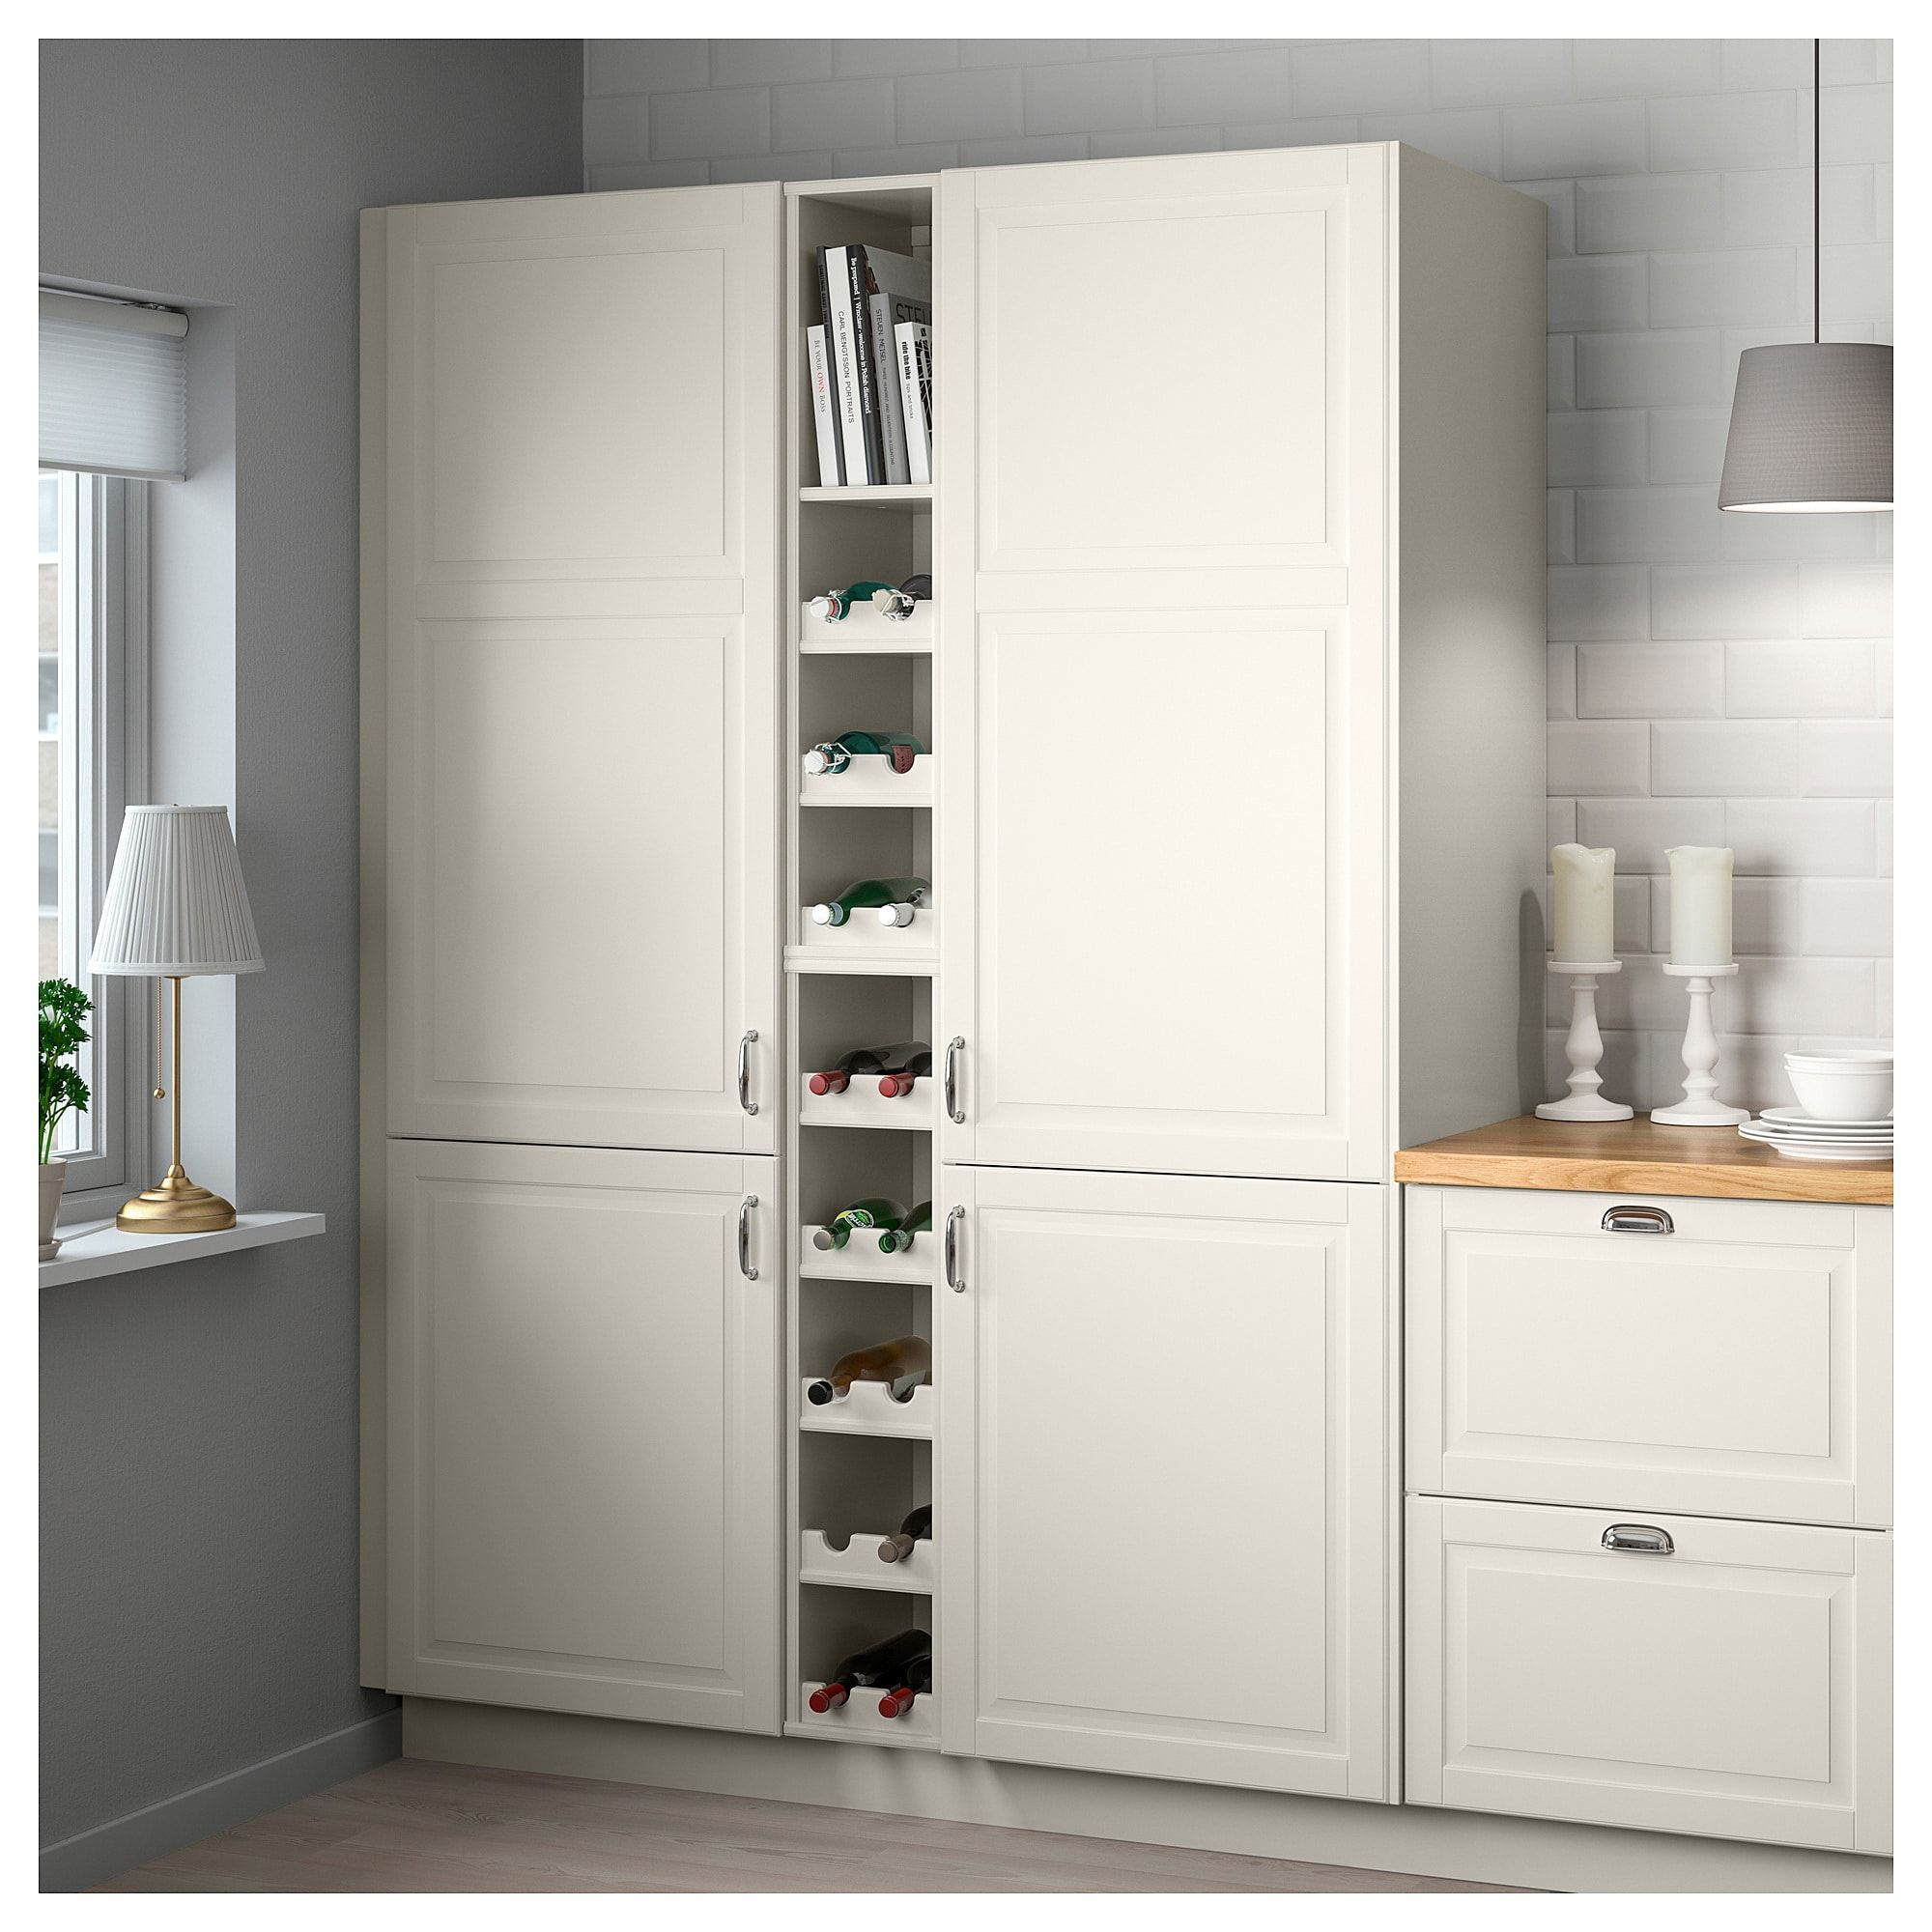 White Pantry Cabinet Lowes - Home Cabinets Design